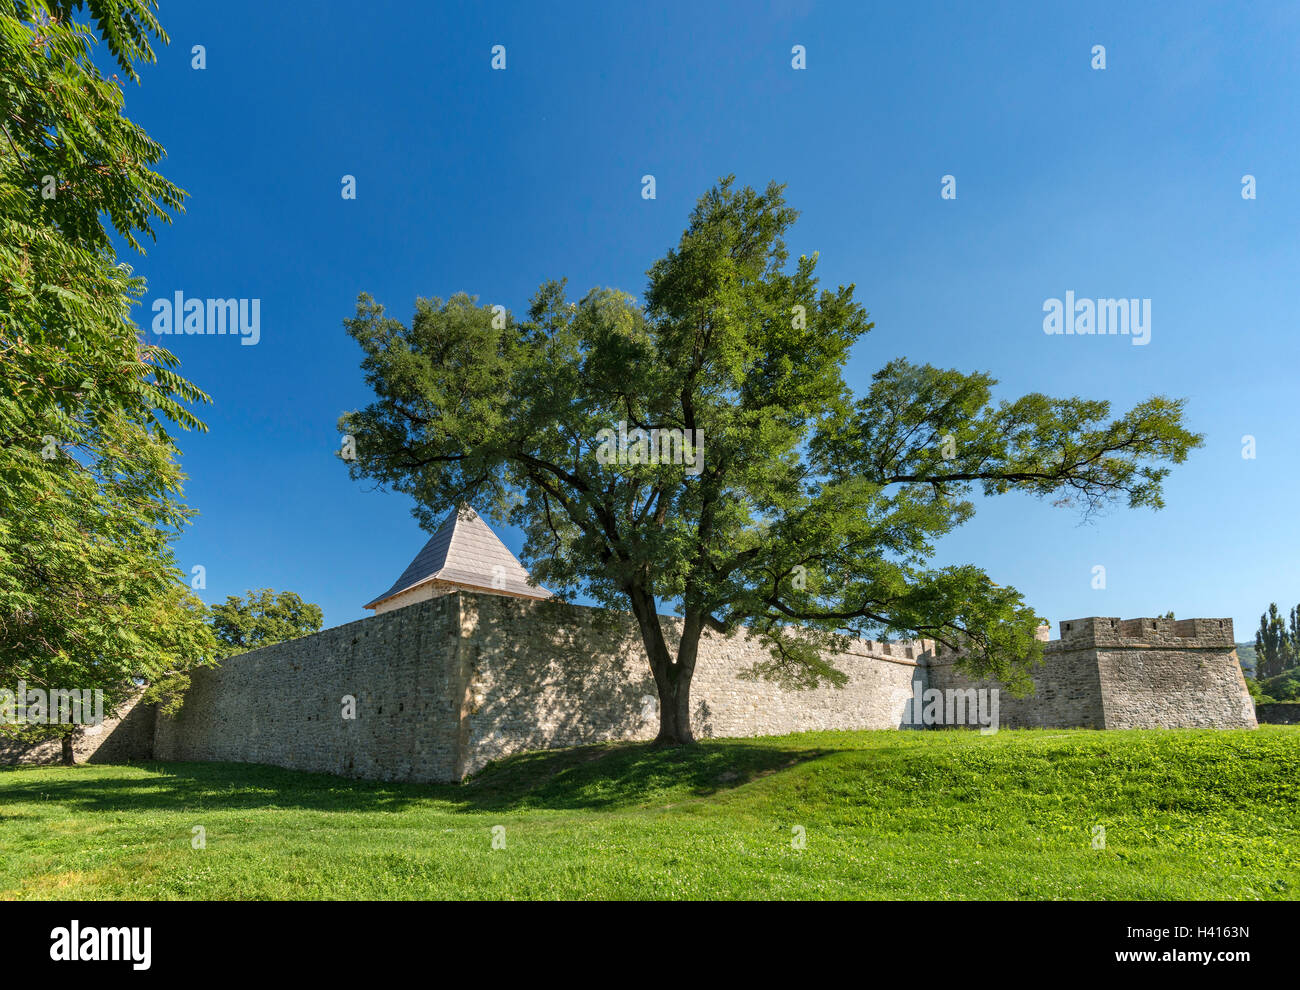 Tvrdava Castle in Banja Luka, Republika Srpska, Bosnia and Herzegovina - Stock Image